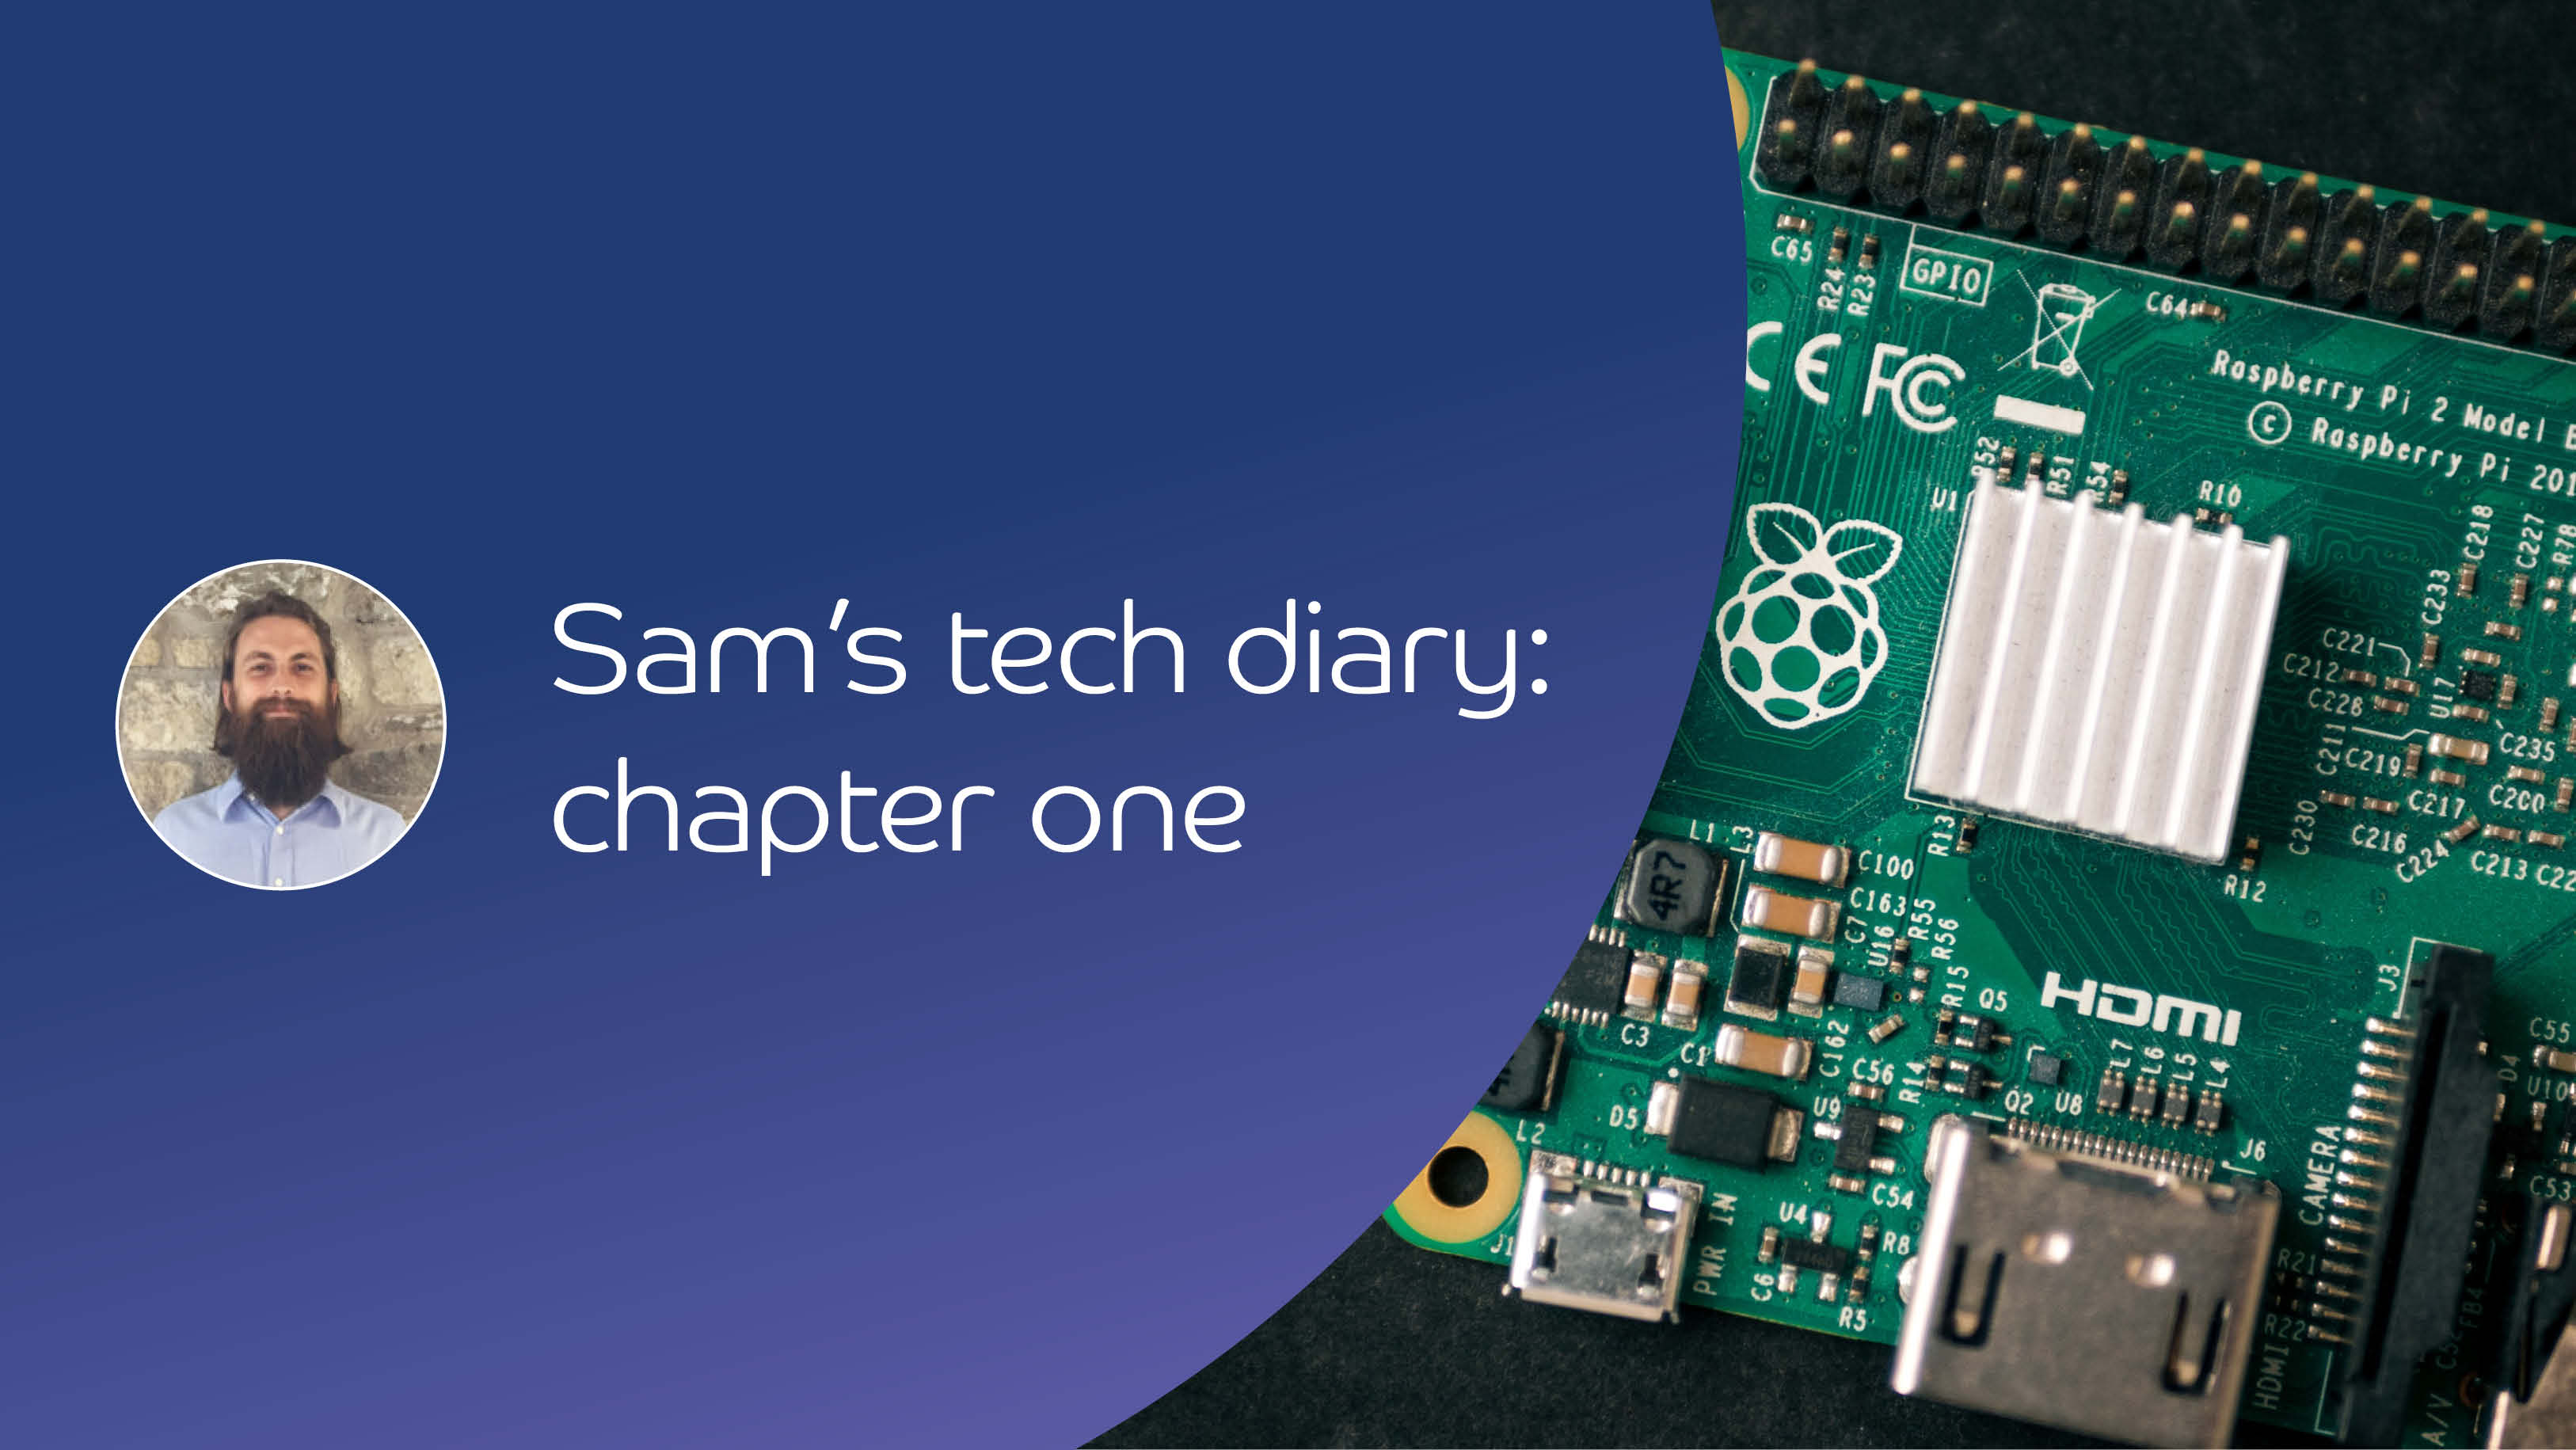 Forget Alexa, bring me Brian Blessed! Sam's tech diary